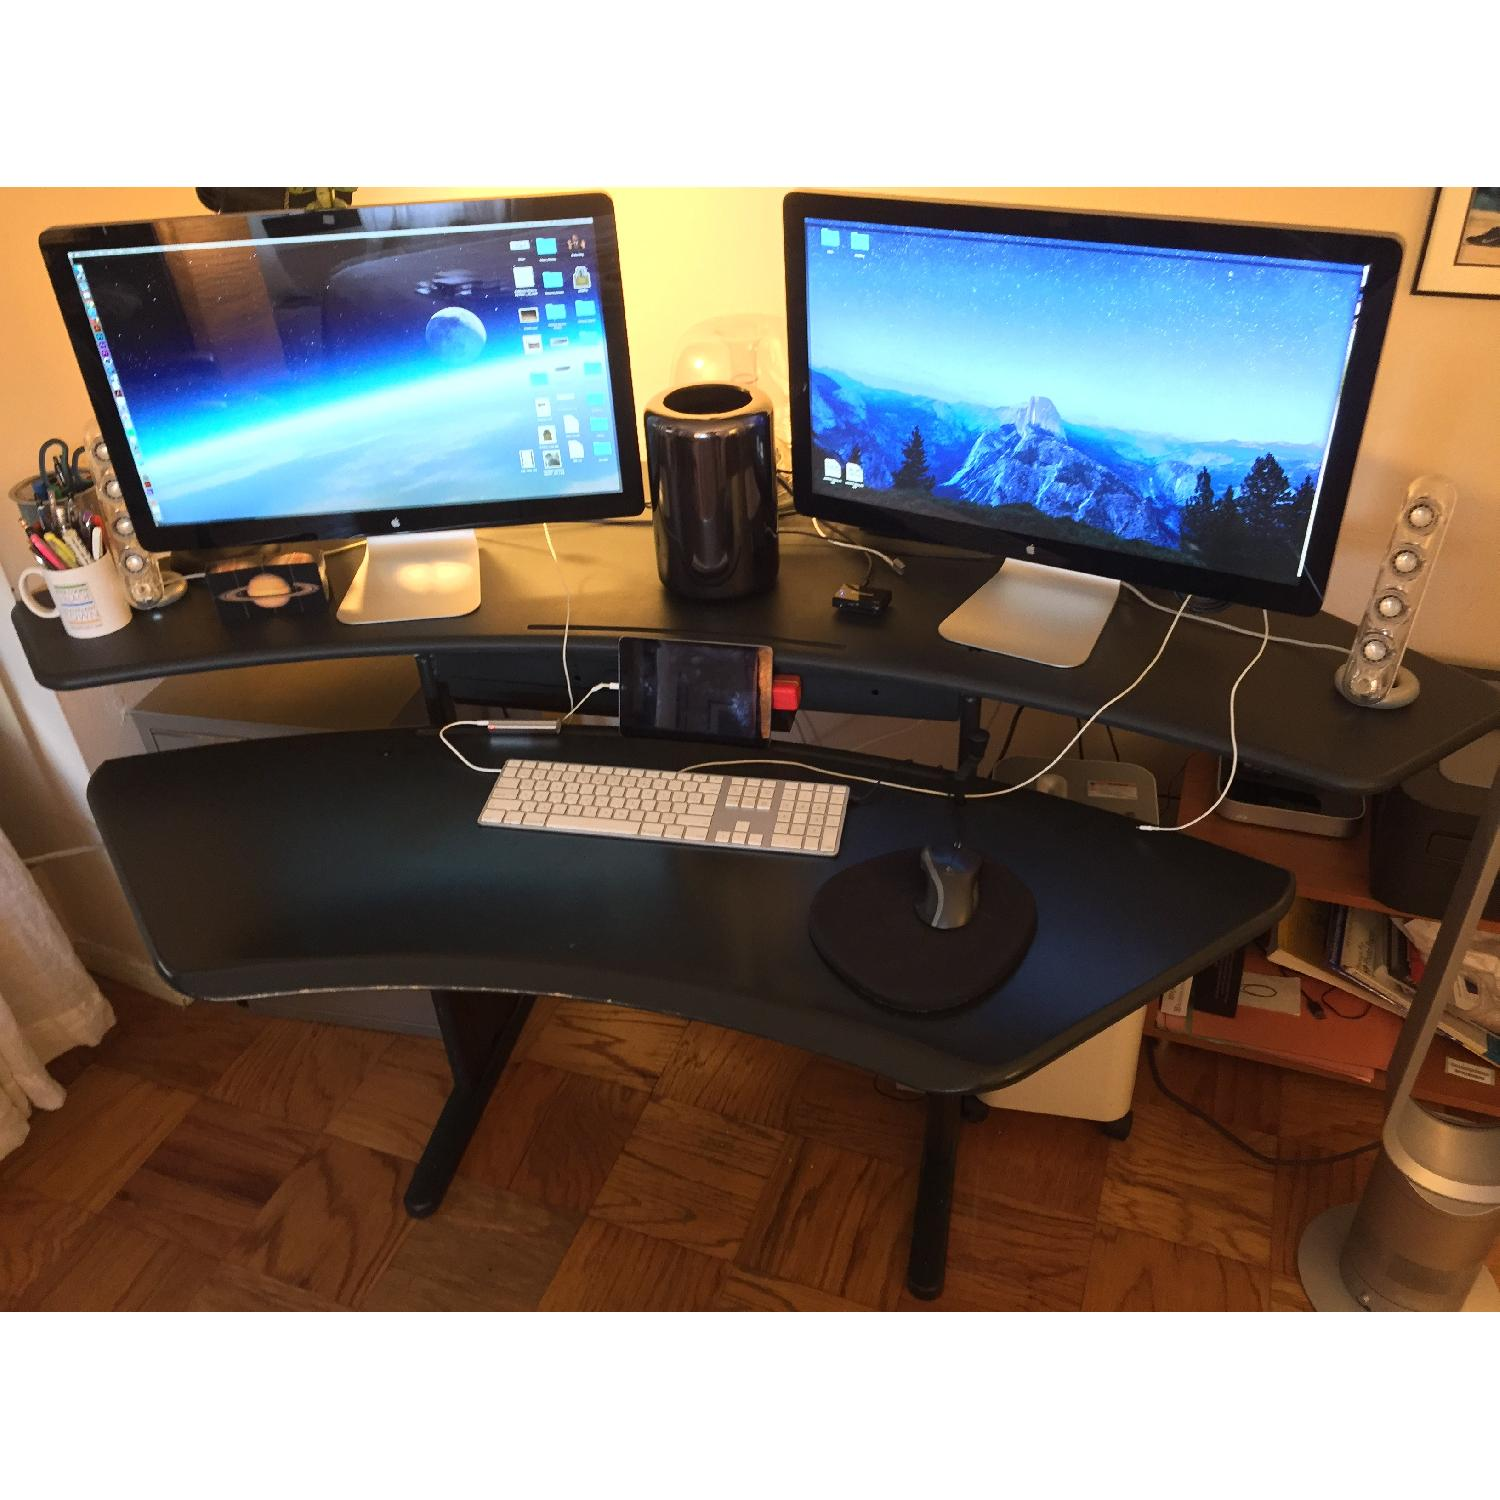 BioMorph Computer Ergonomic Height Adjustable Desk - image-1